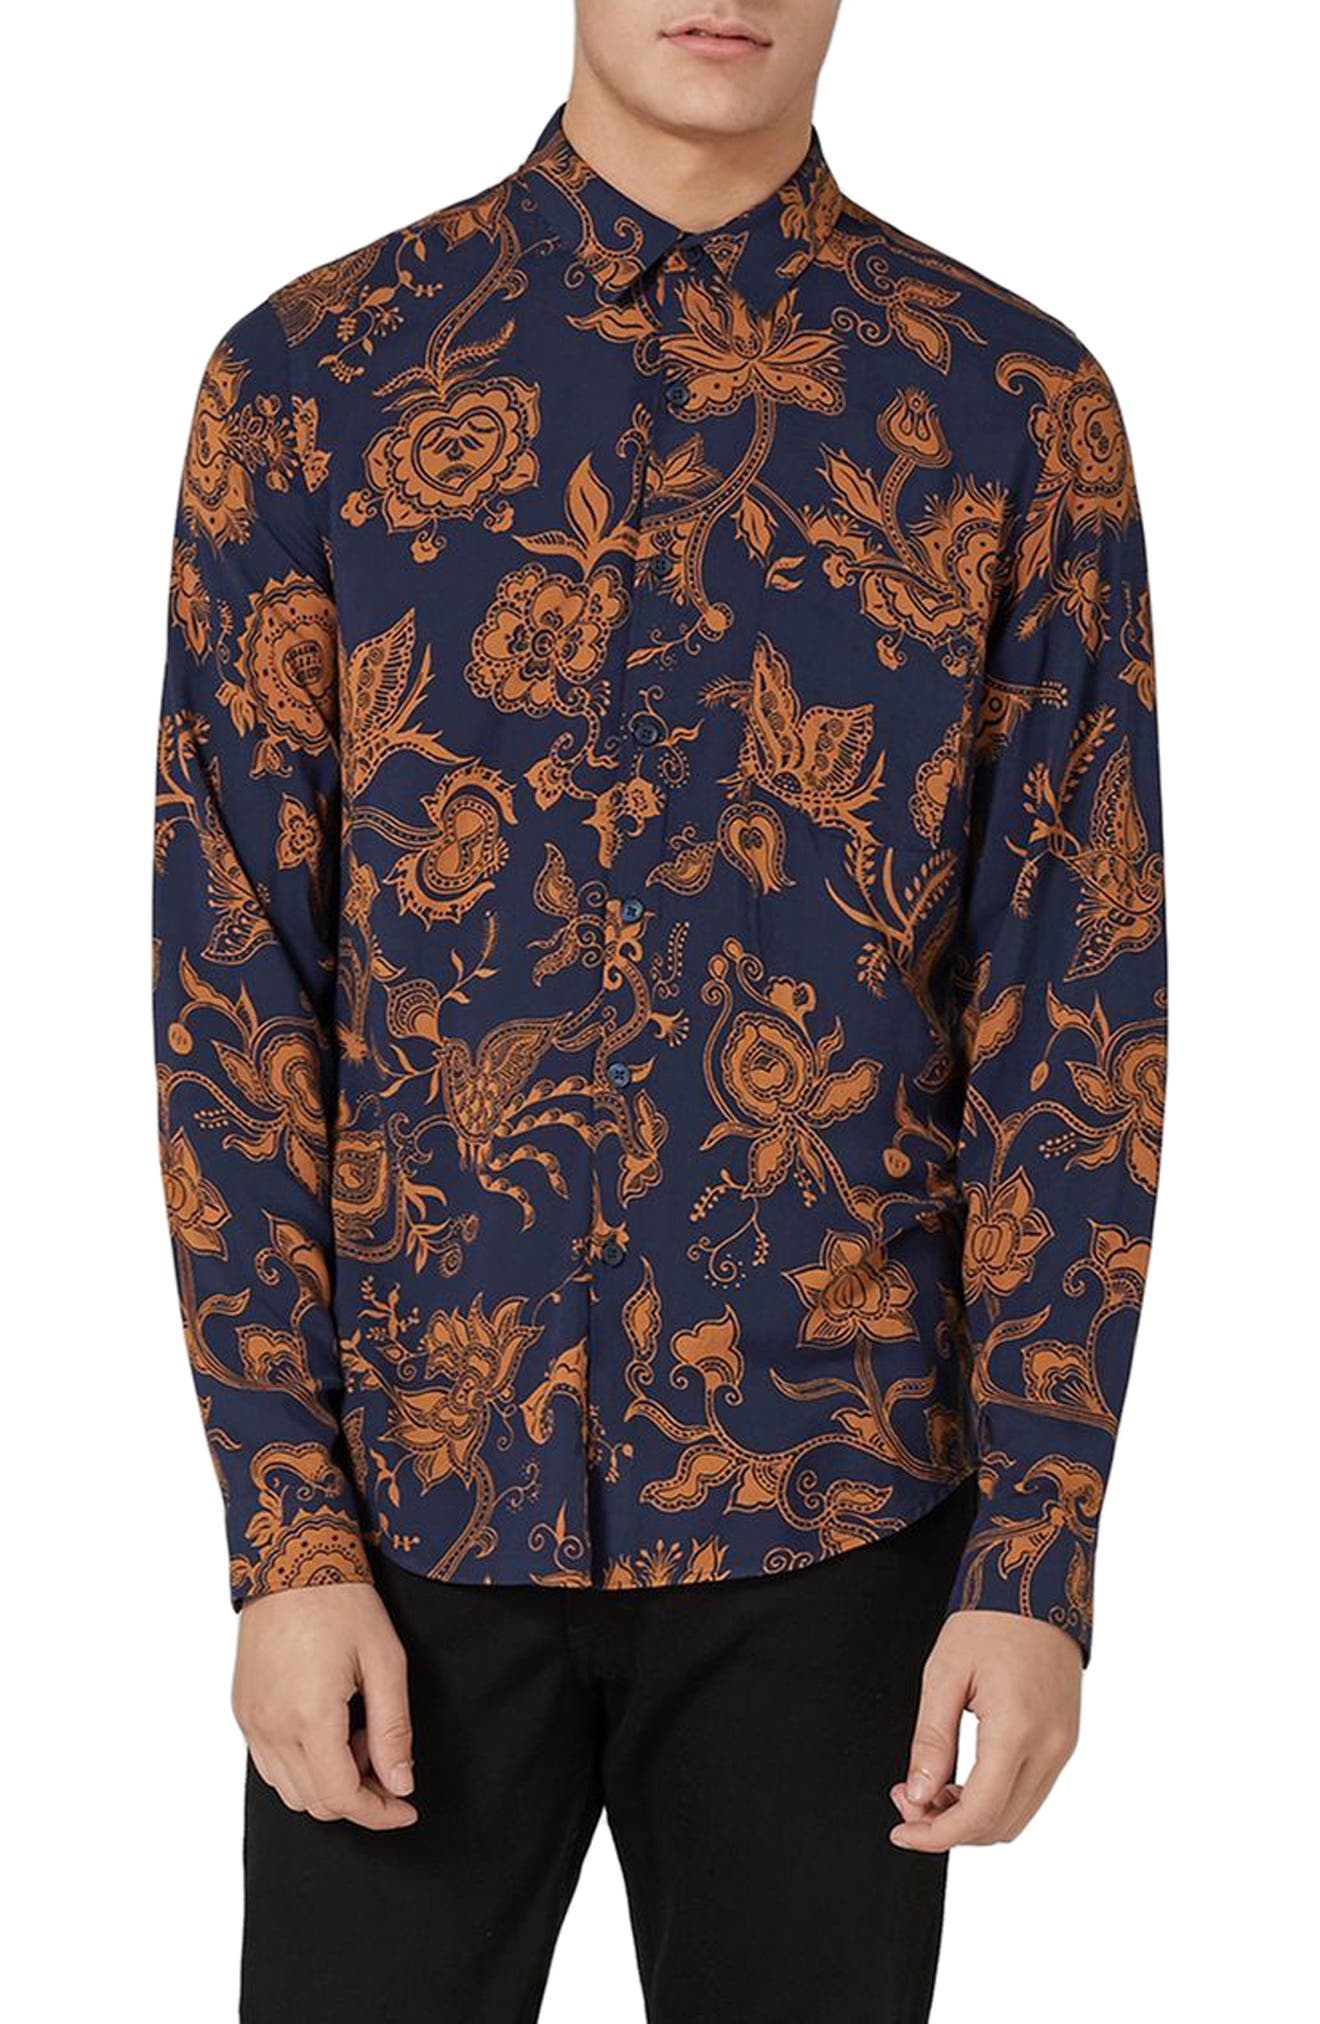 Alternate Image 1 Selected - Topman Classic Fit Floral Print Shirt